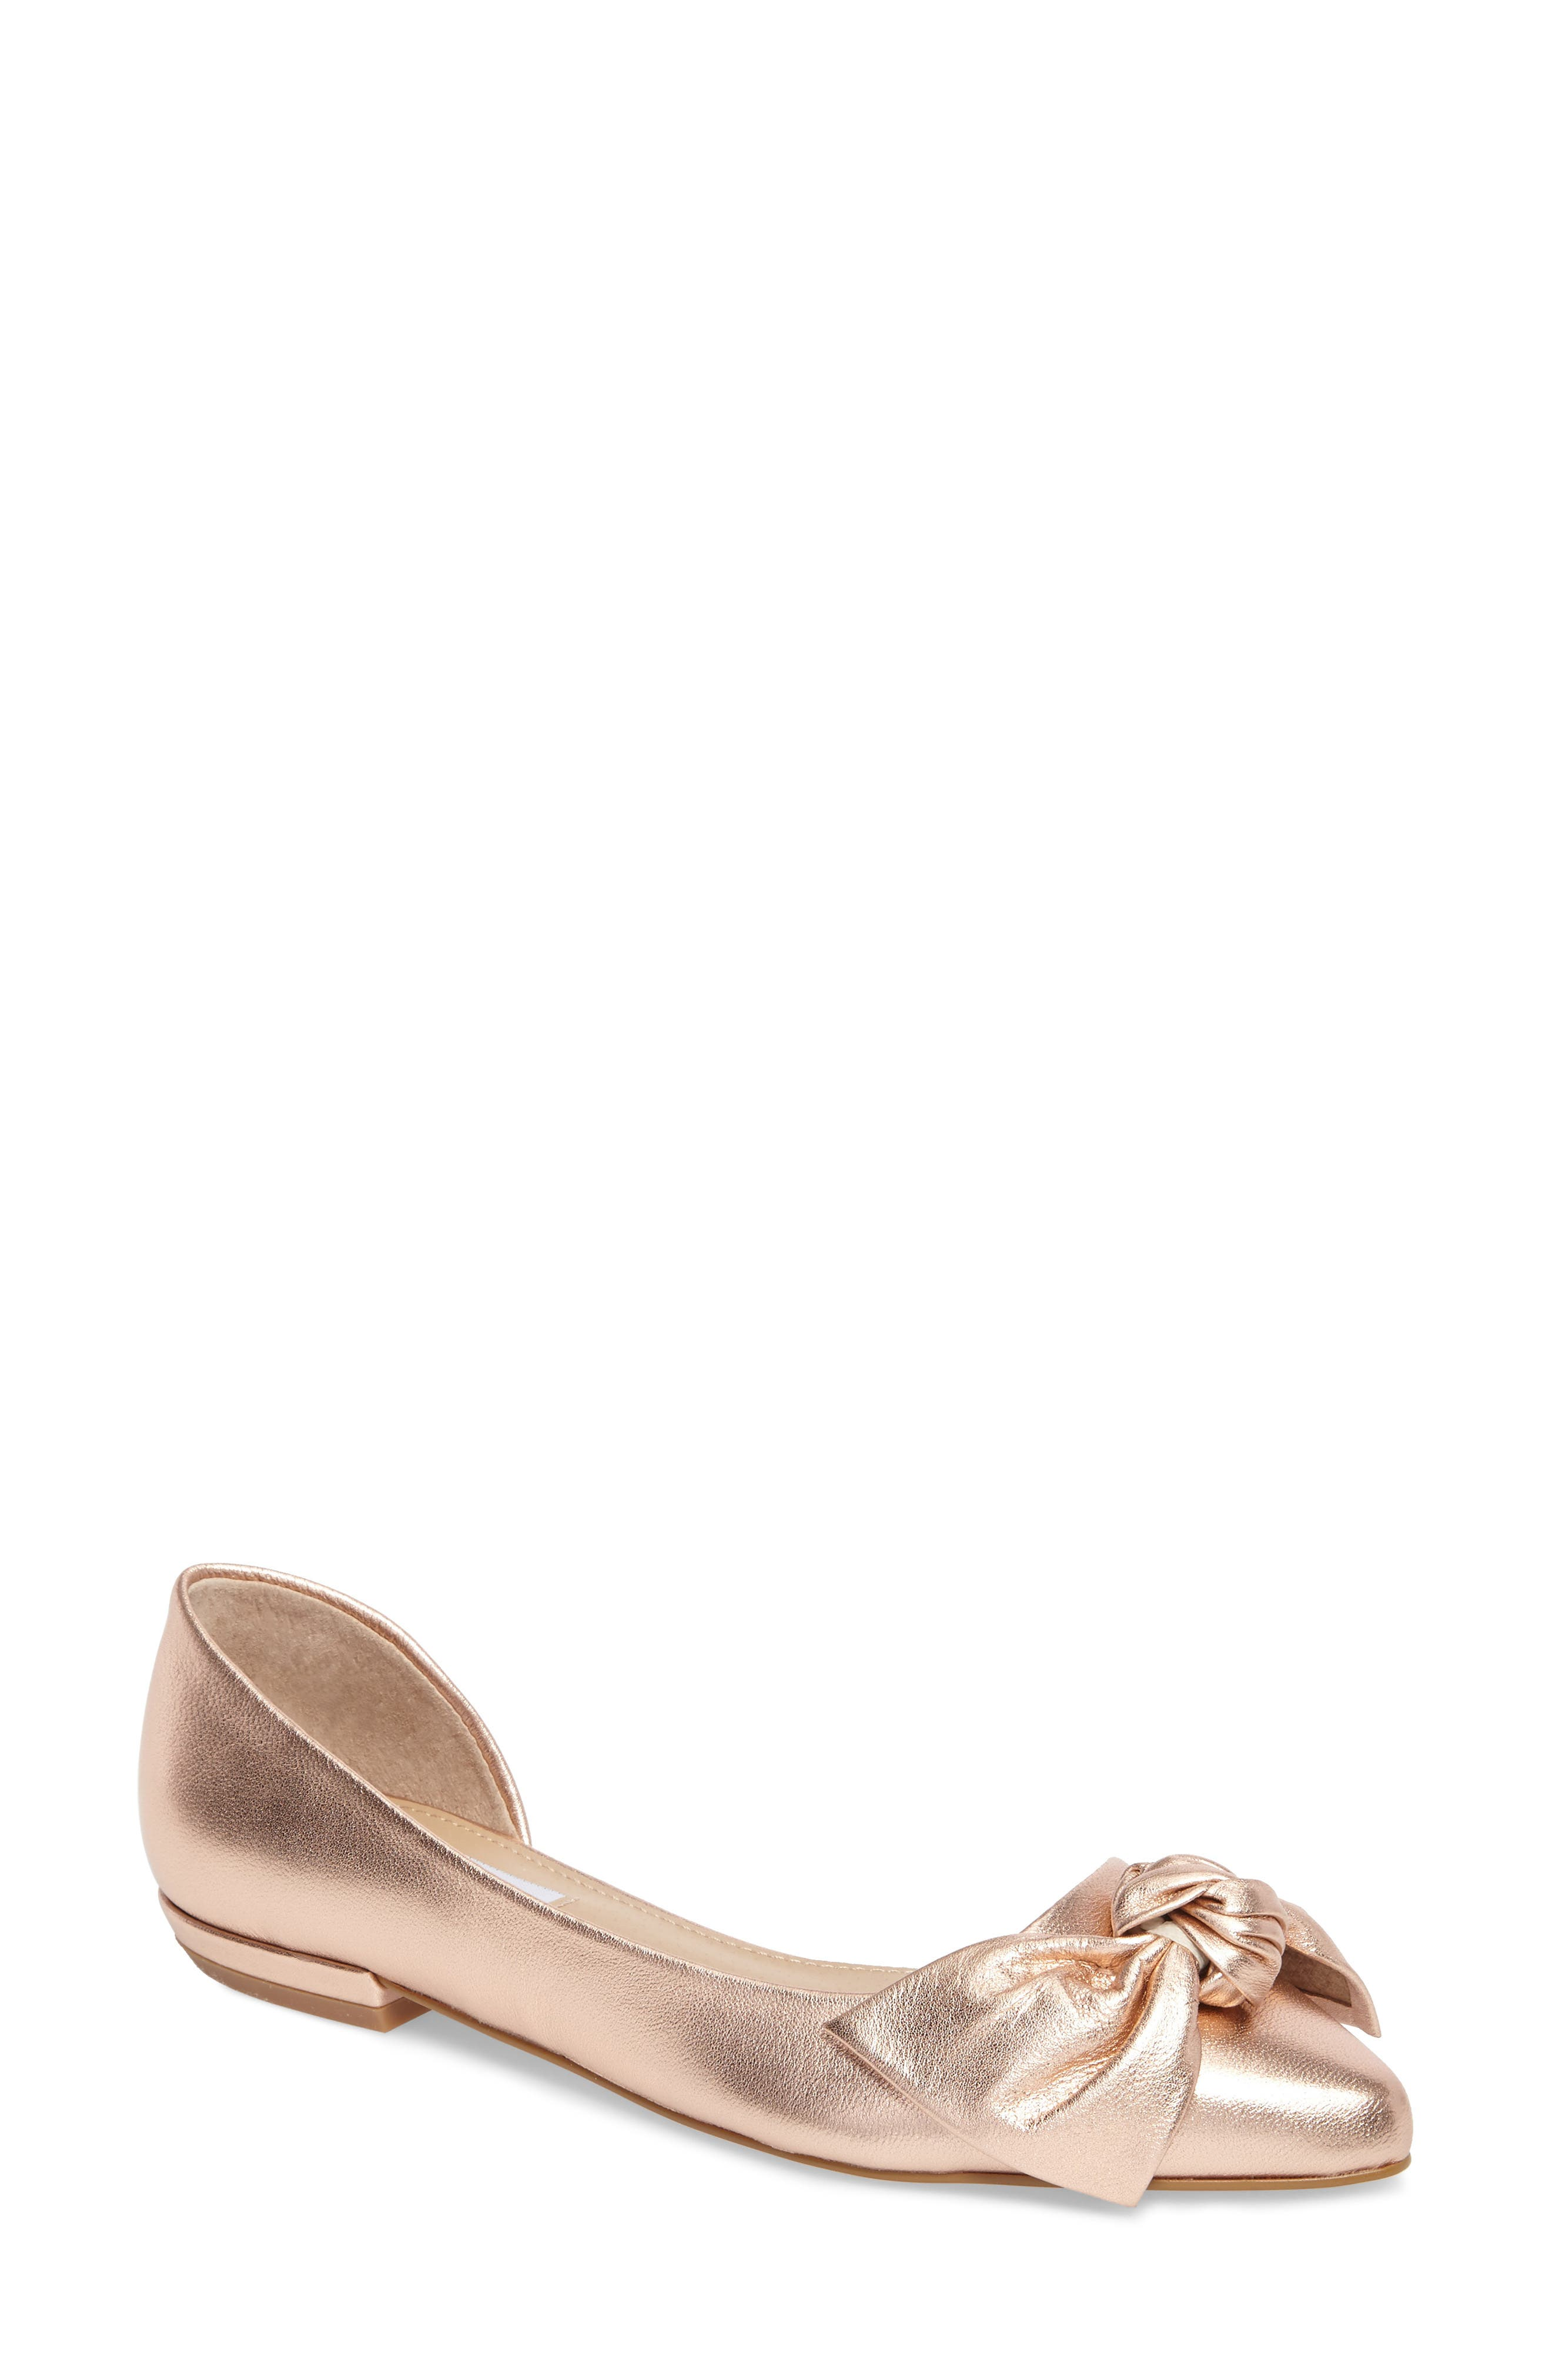 Edina d'Orsay Bow Flat,                         Main,                         color, Rose Gold Leather